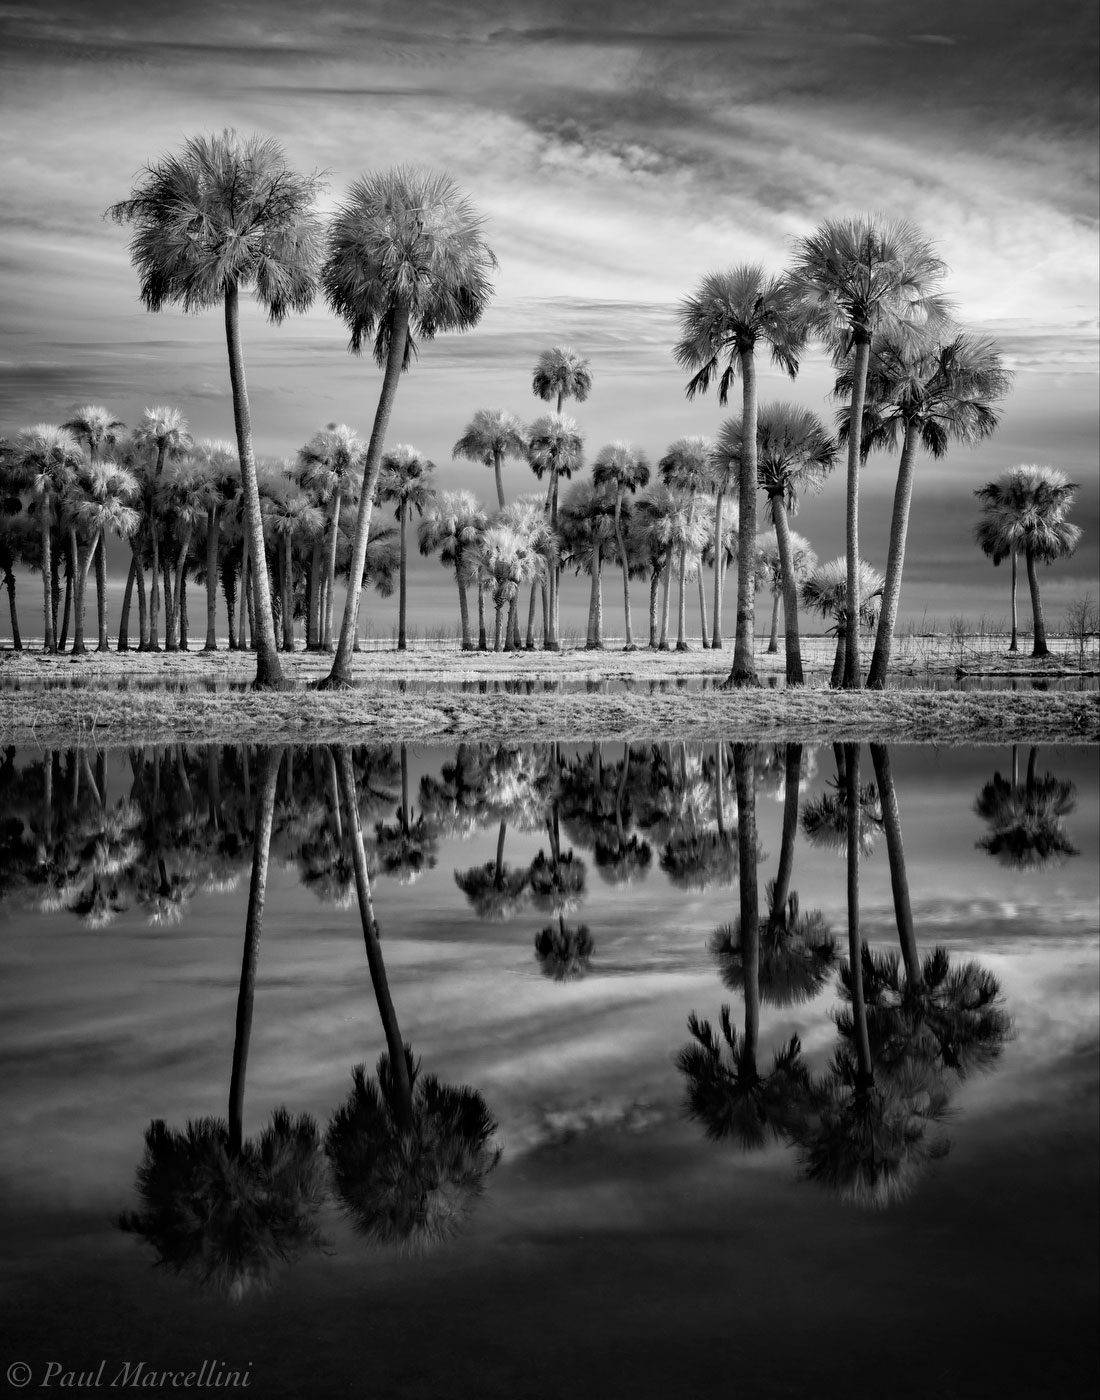 Little Big Econ State Forest, Florida, Econlockhatchee river, sabal palms, UFHEALTH, photo